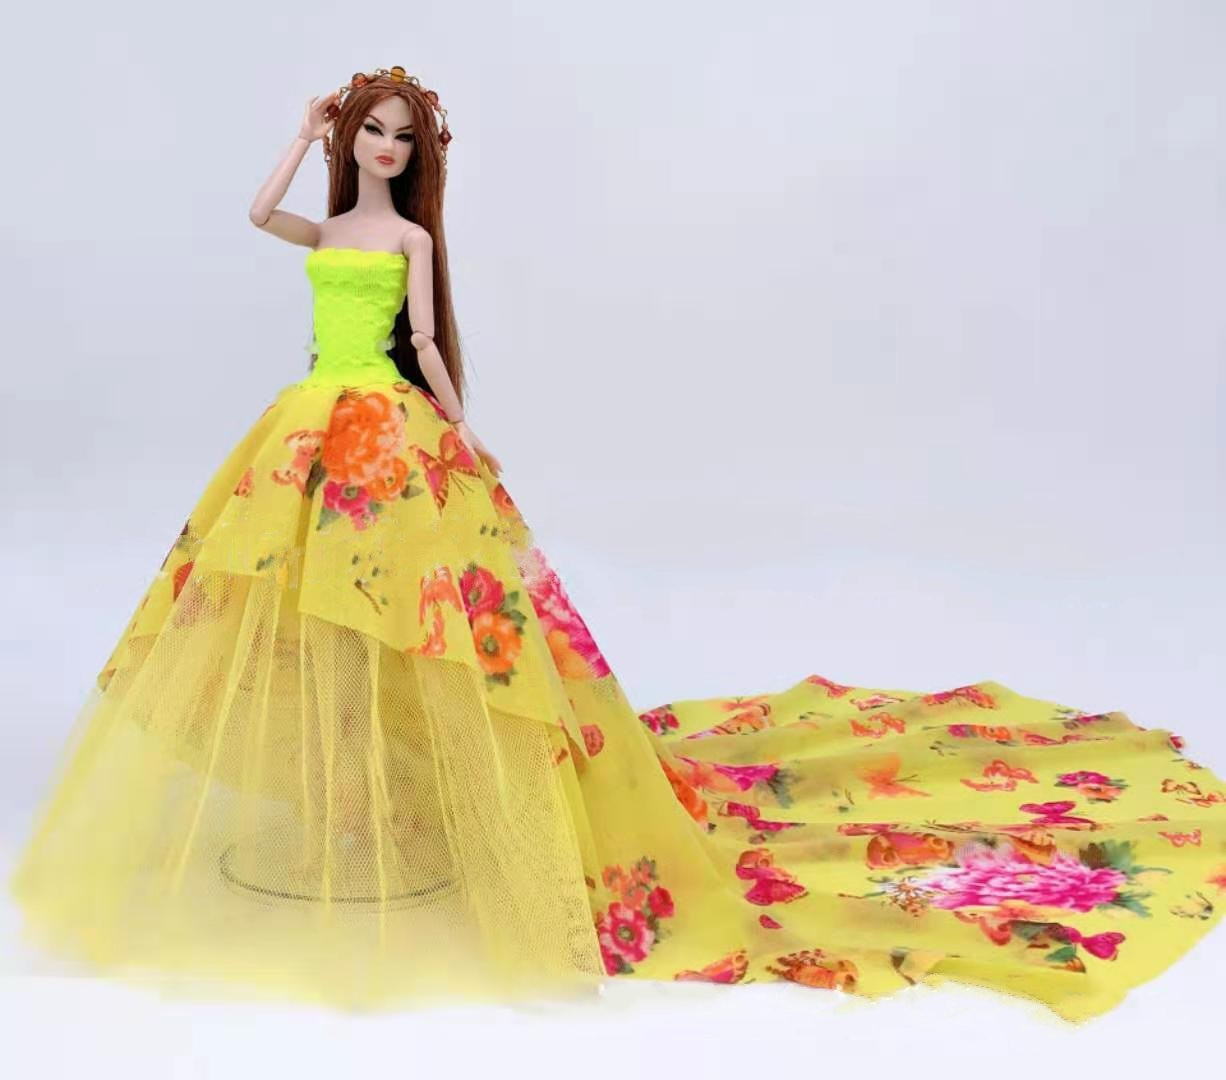 AliExpress - 1:6 Off Shoulder Butterfly Floral Dress for Barbie Doll Clothes Yellow Princess Party Gown 30cm BJD Dolls Accessories Kids Toys